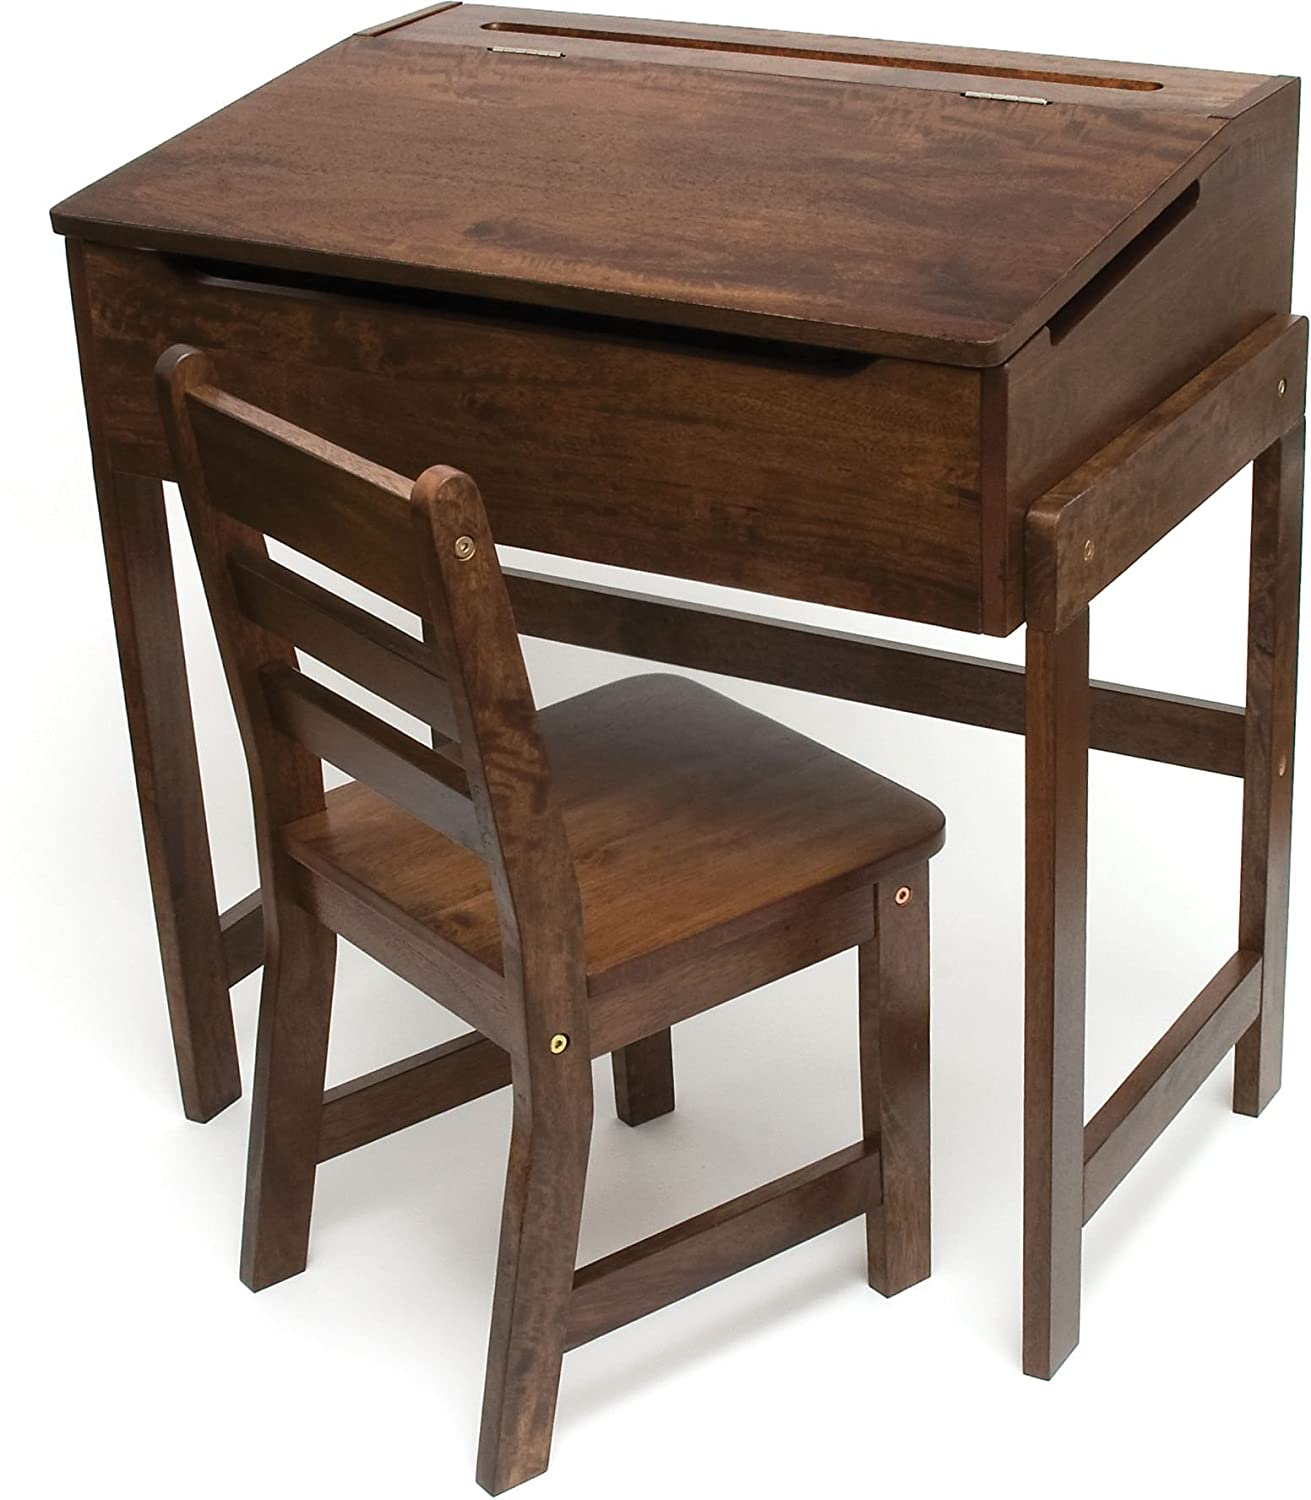 Lipper International 564WN Child's Slanted Top Desk & Chair, Walnut Finish